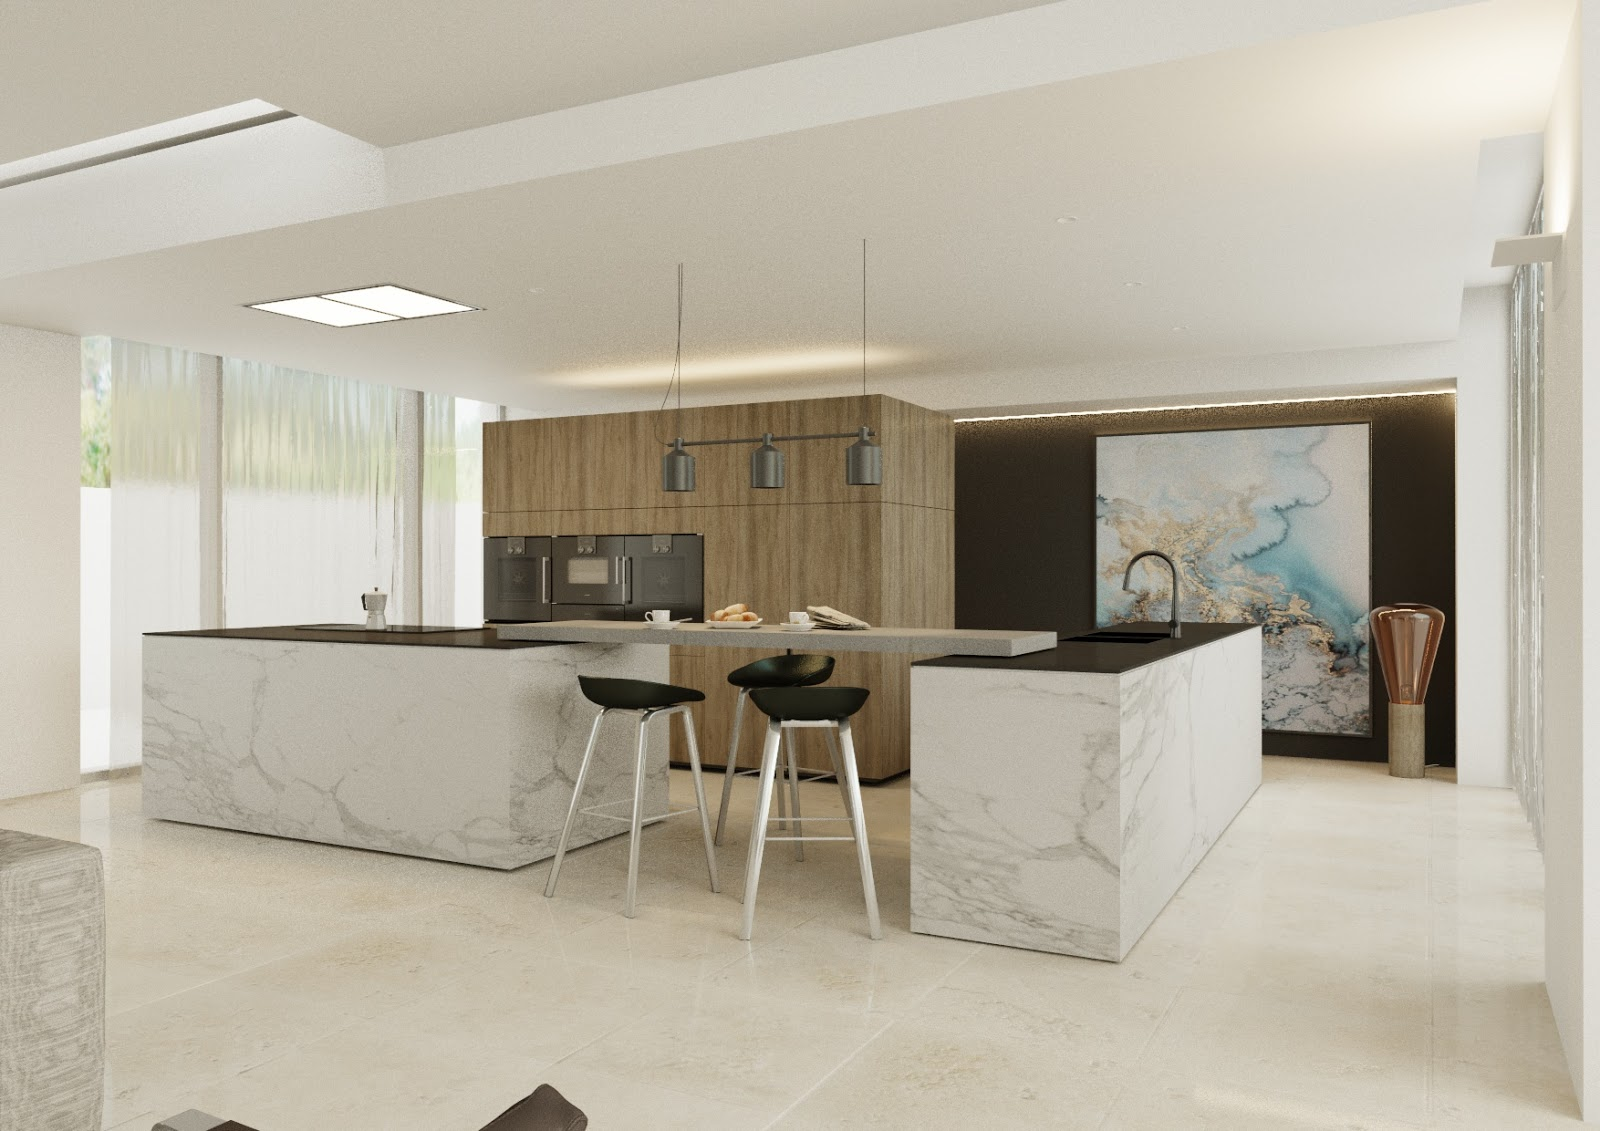 Minosa modern kitchen design requires contemporary approach - New ideas contemporary kitchen design ...